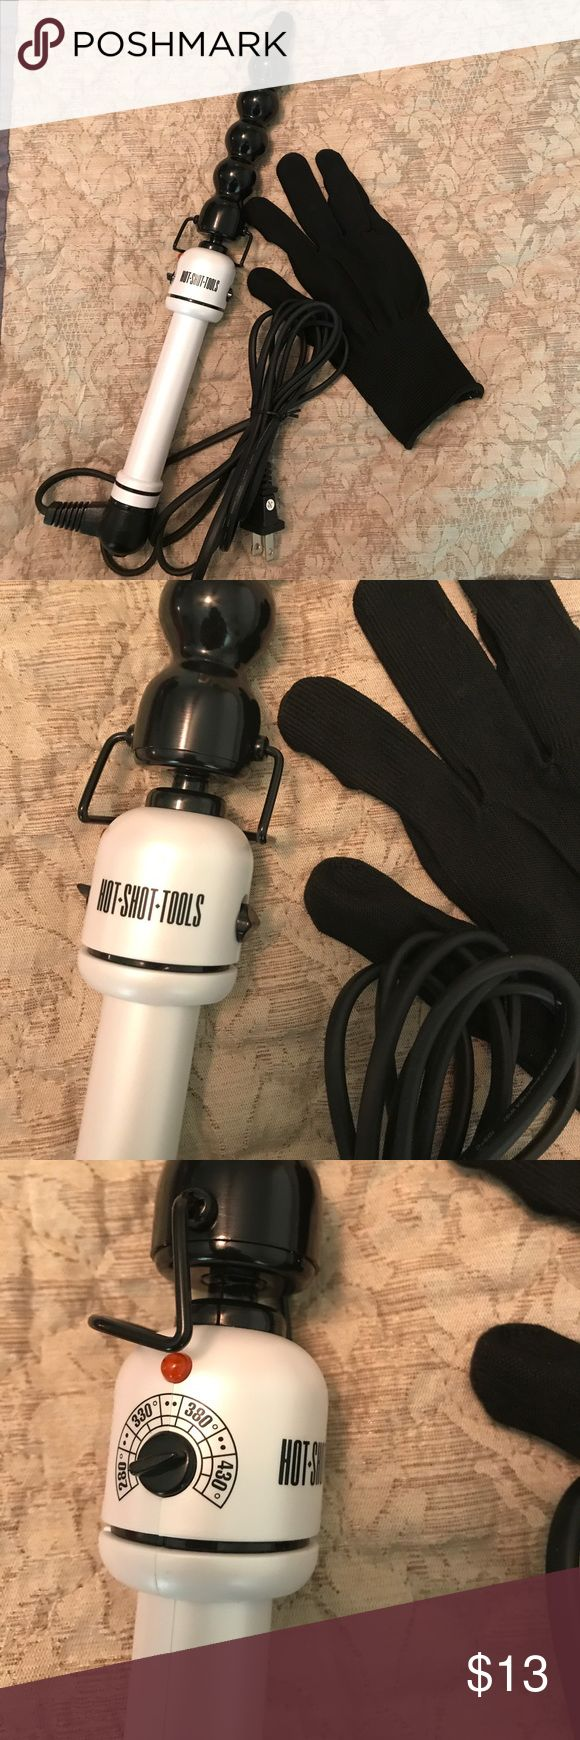 Hot shot curling iron with heatproof glove This makes